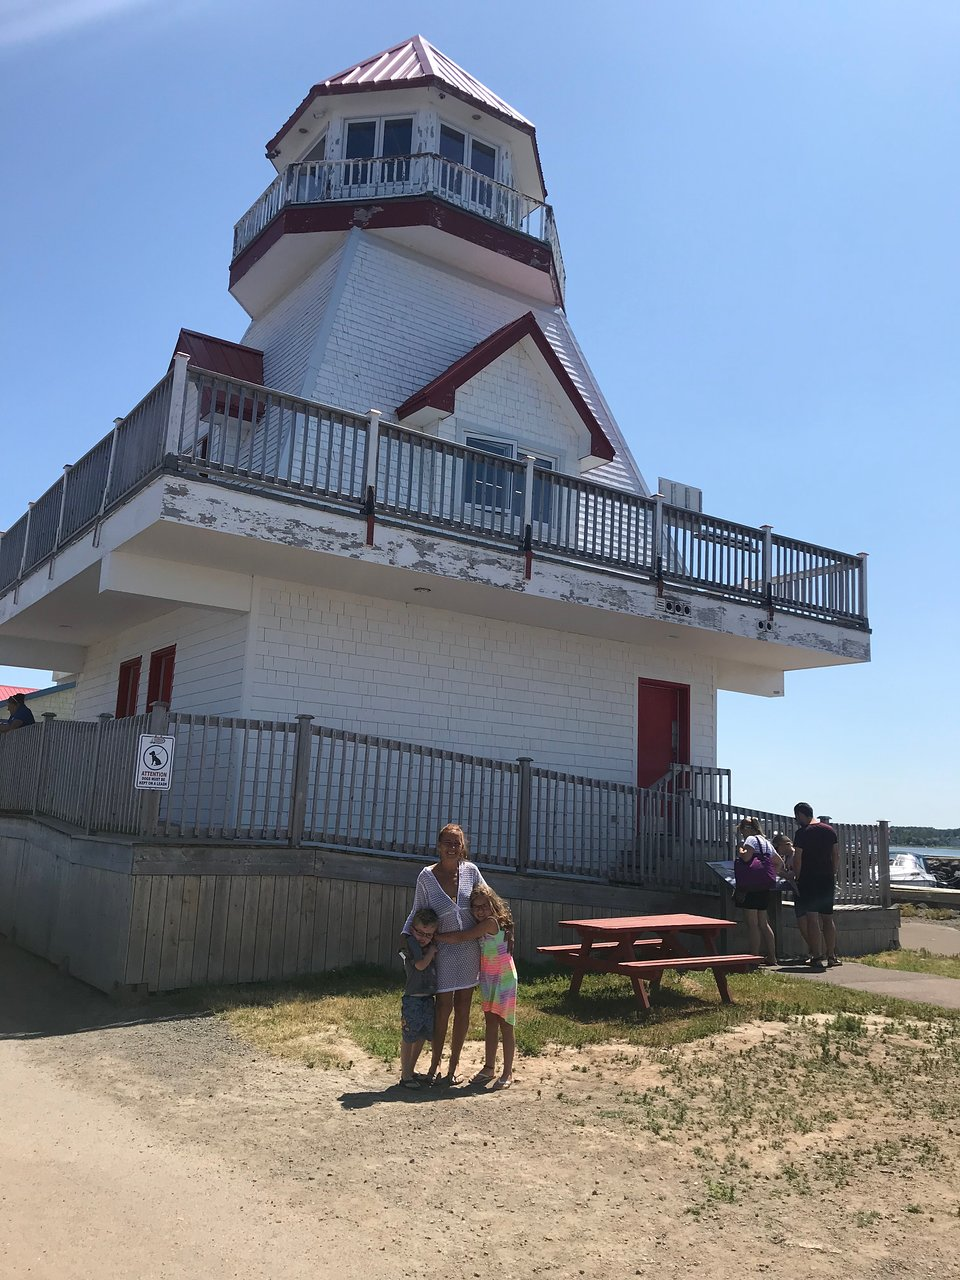 Pointe Du Chene Wharf All You Need To Know Before You Go Updated 2020 New Brunswick Tripadvisor